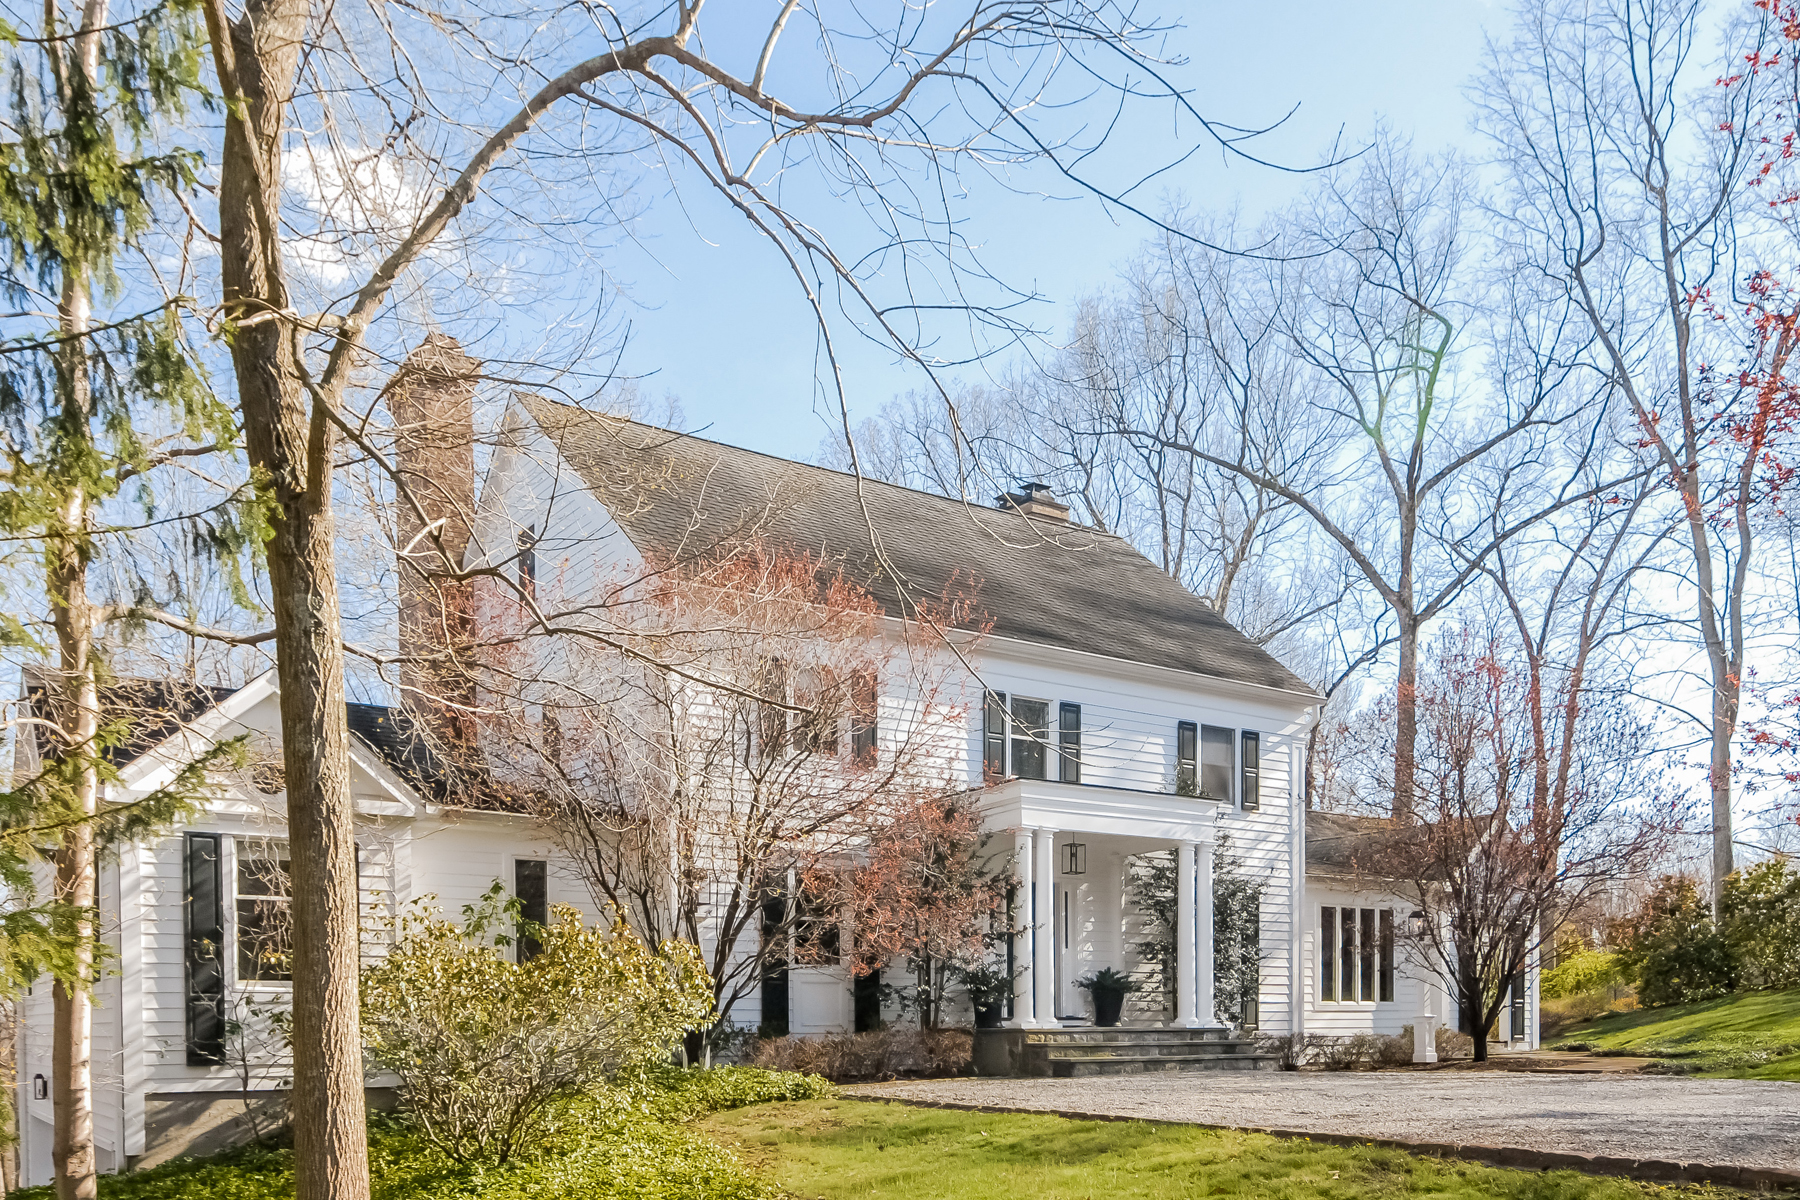 Single Family Home for Sale at Peaceful & Private 26 Hilltop Road Katonah, New York 10536 United States